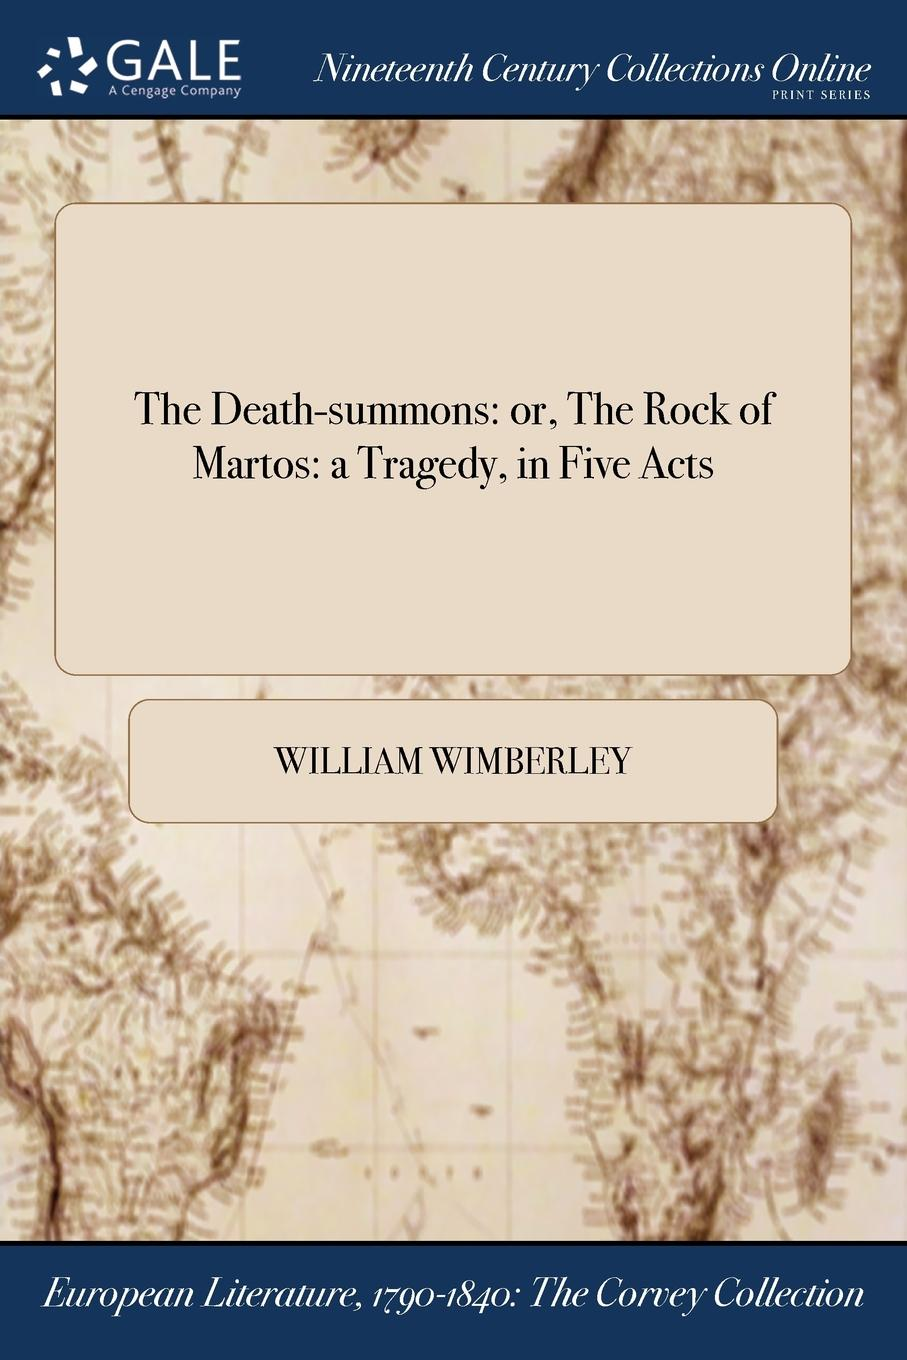 Фото - William Wimberley The Death-summons. or, The Rock of Martos: a Tragedy, in Five Acts kensuke okabayashi the five dysfunctions of a team an illustrated leadership fable